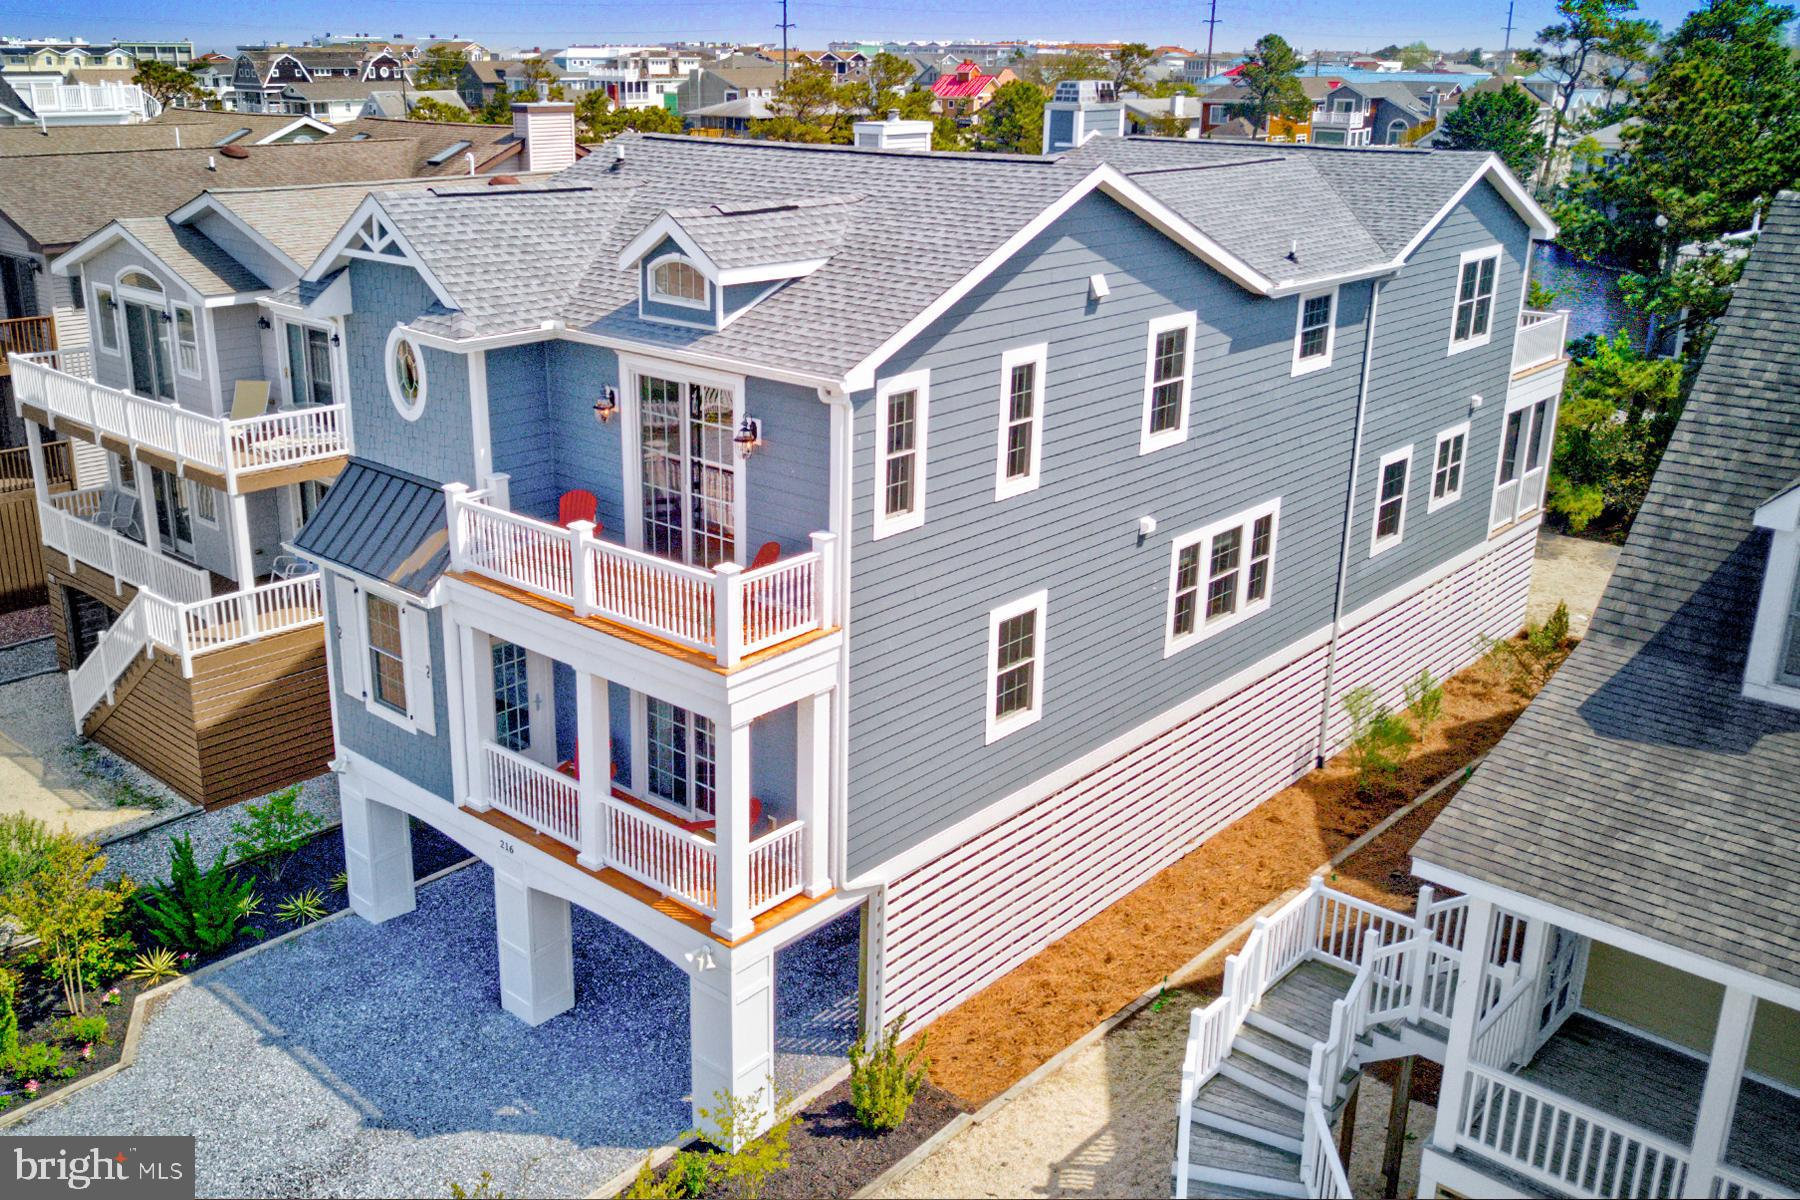 216 2ND STREET, BETHANY BEACH, DE 19930